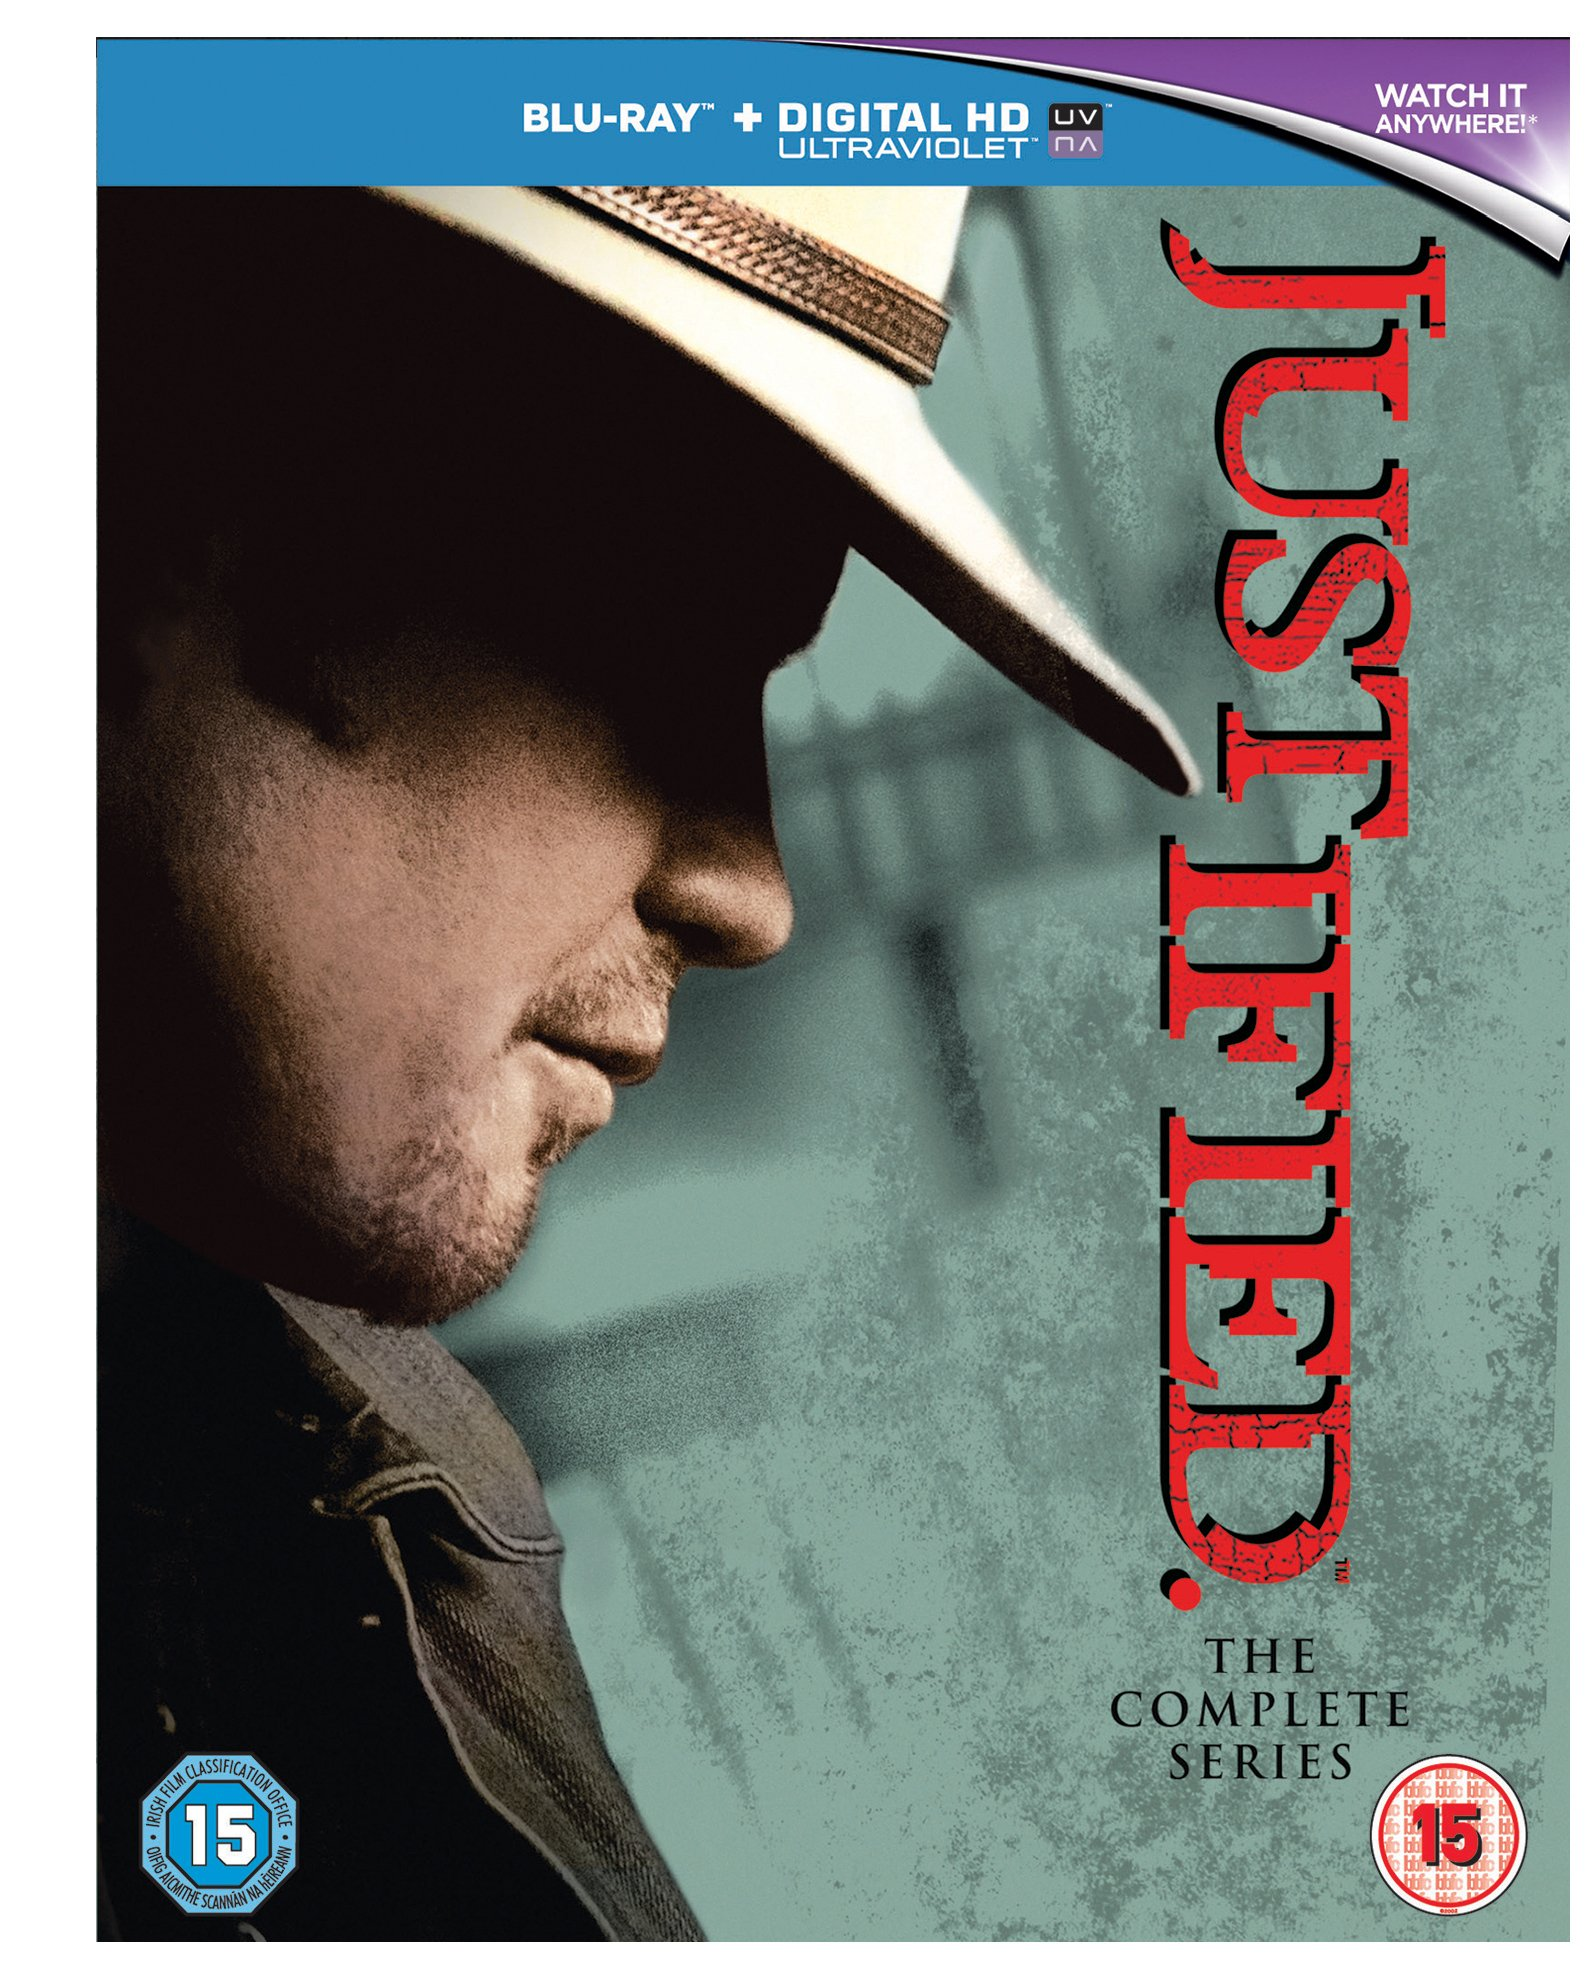 Justified: The Complete Series Blu-Ray [Region A & B & C] by Sony Pictures Home Entertainment